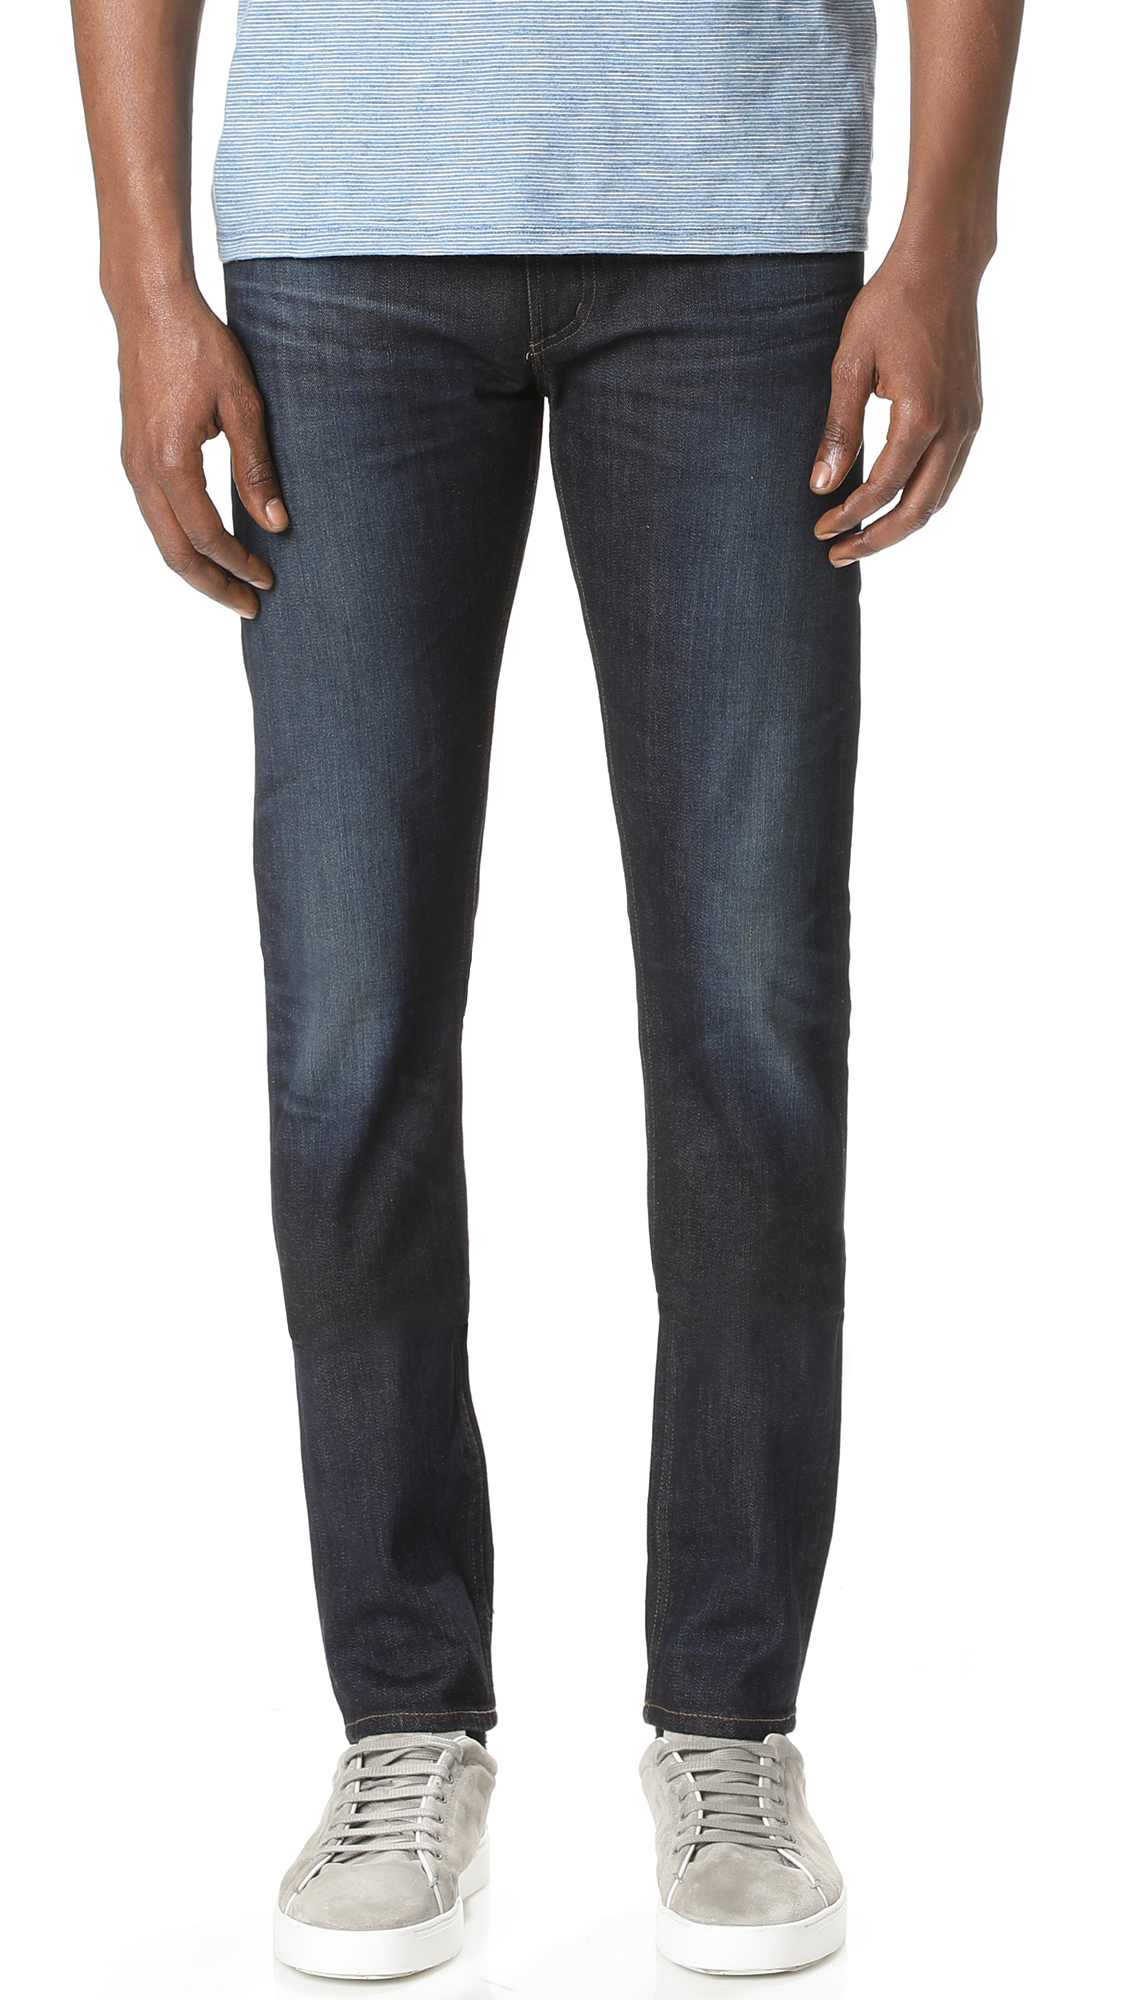 Bowery Pure Slim Jeans